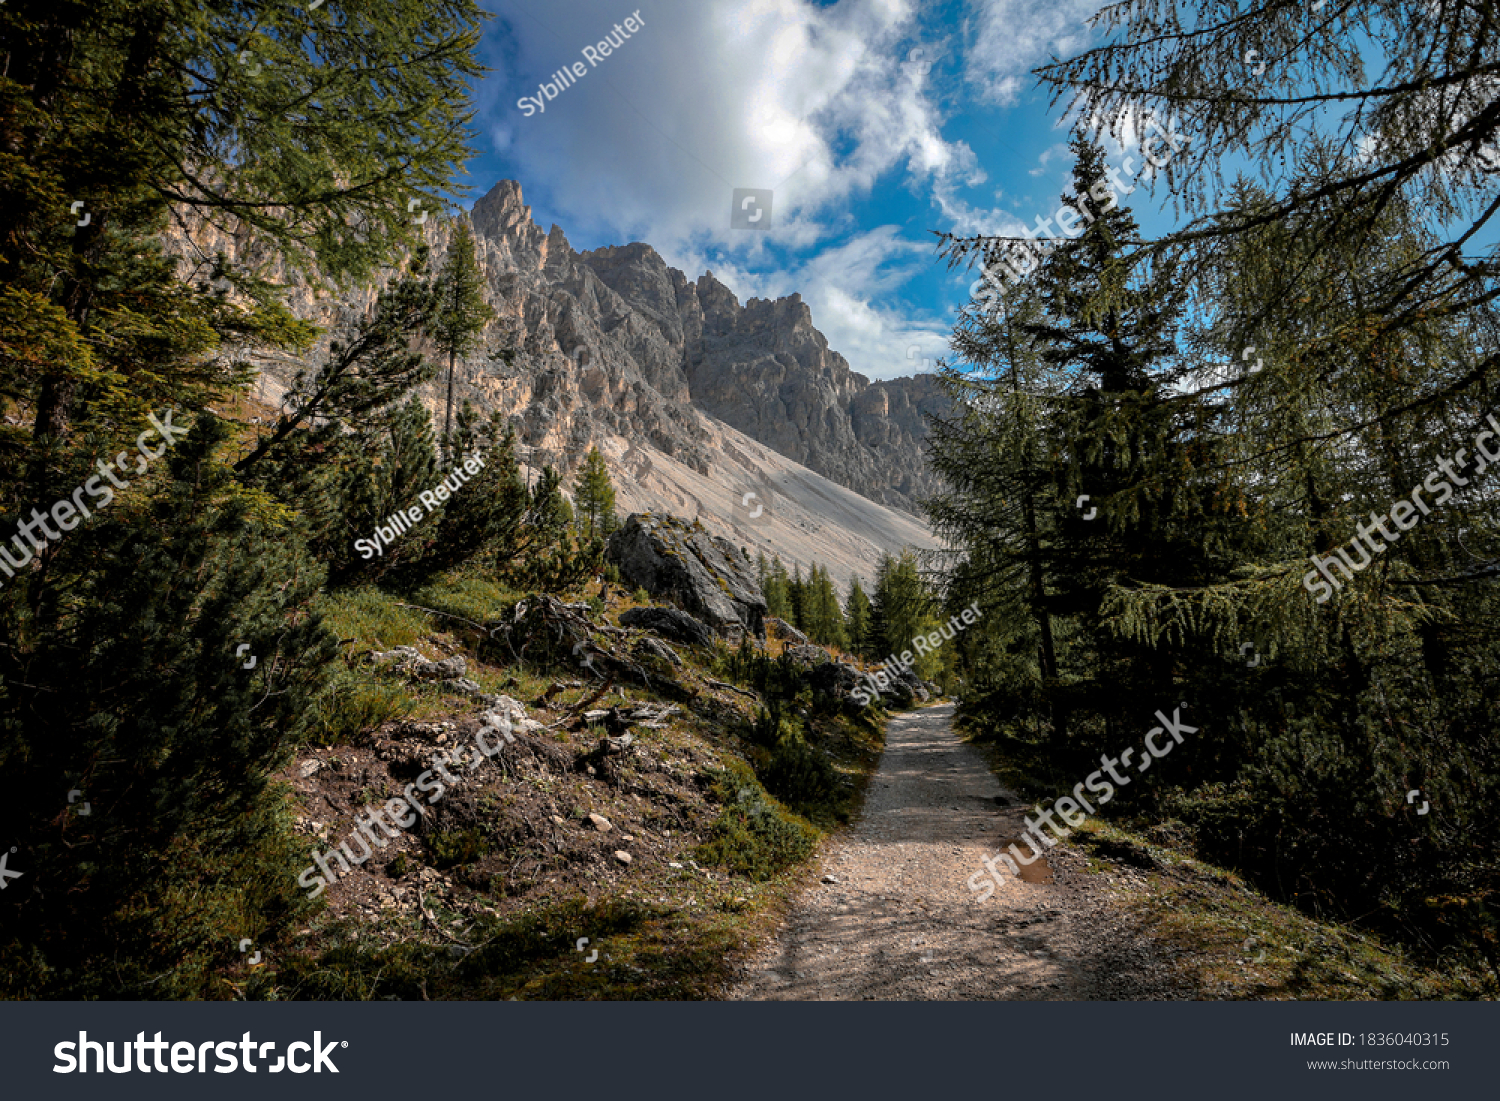 Hiking path in the mountain landscape of the Cadini di Misurina mountain group in the Dolomites, Italian alps.